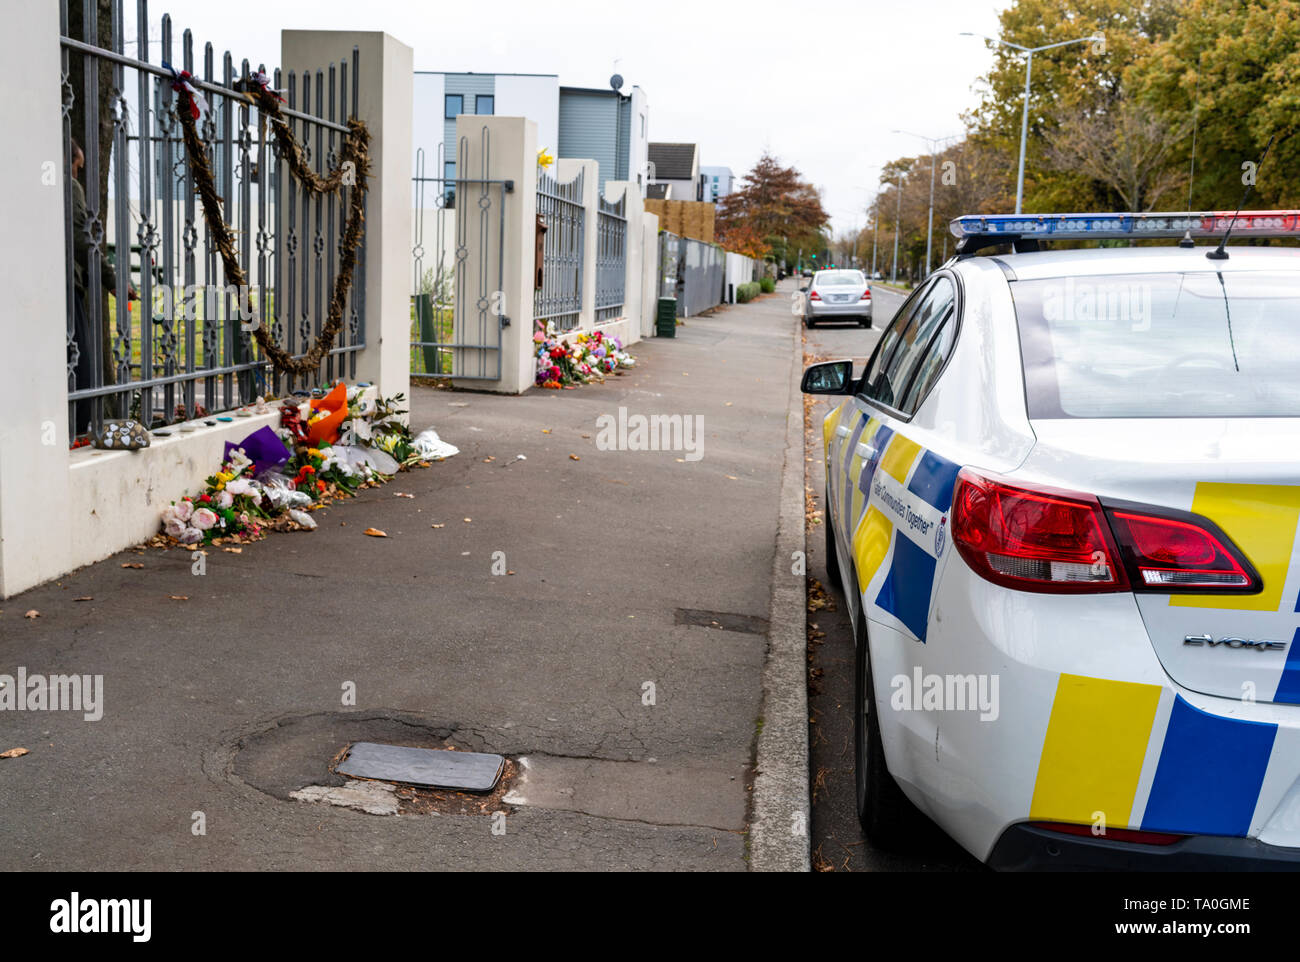 Police Memorial Flowers Wreath Stock Photos & Police Memorial